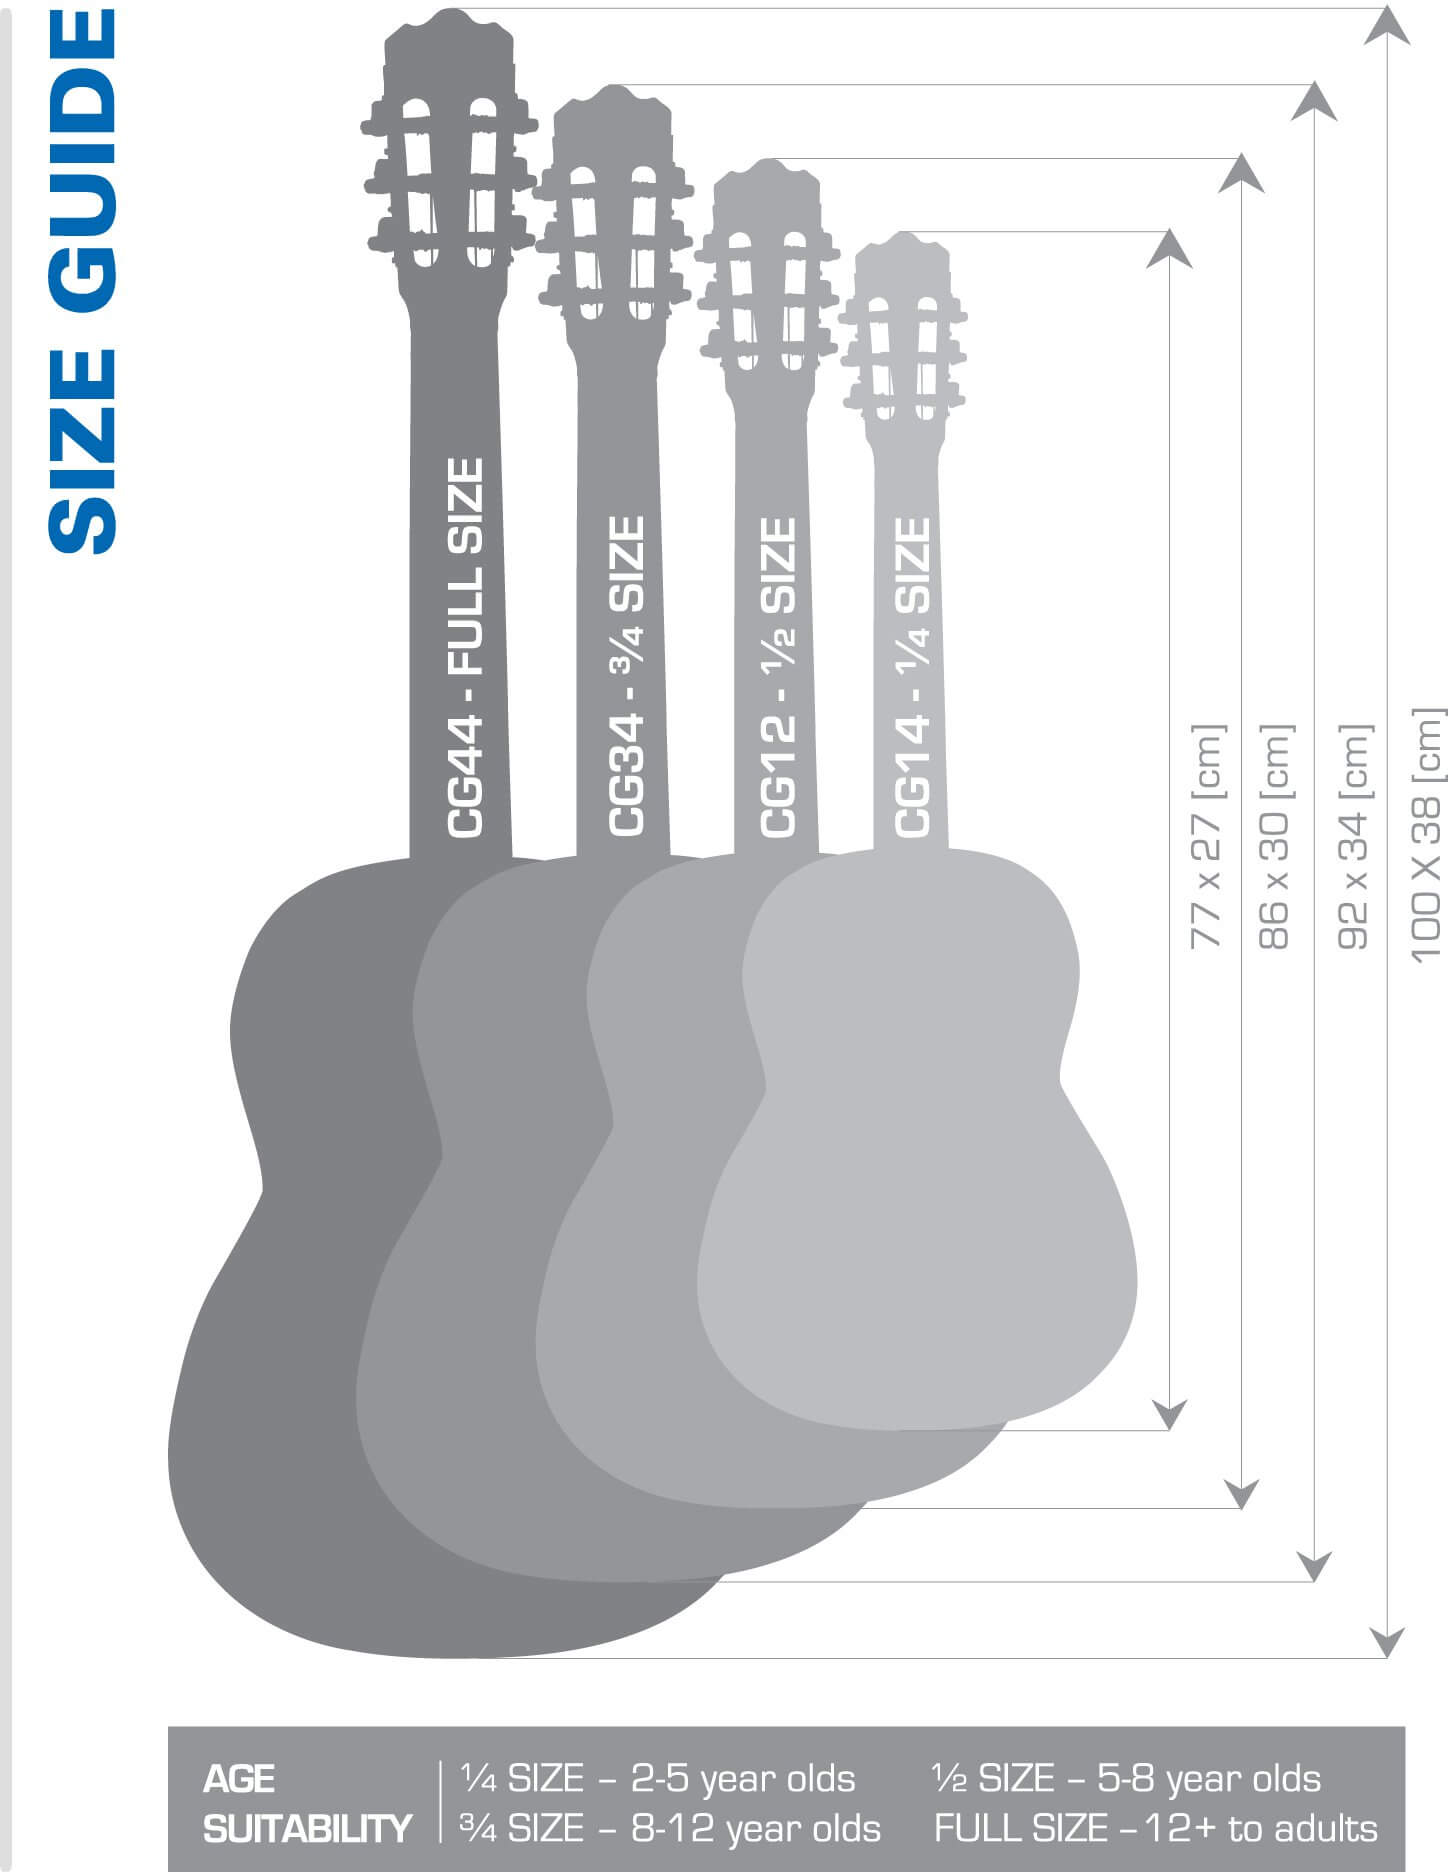 Size of the Guitar